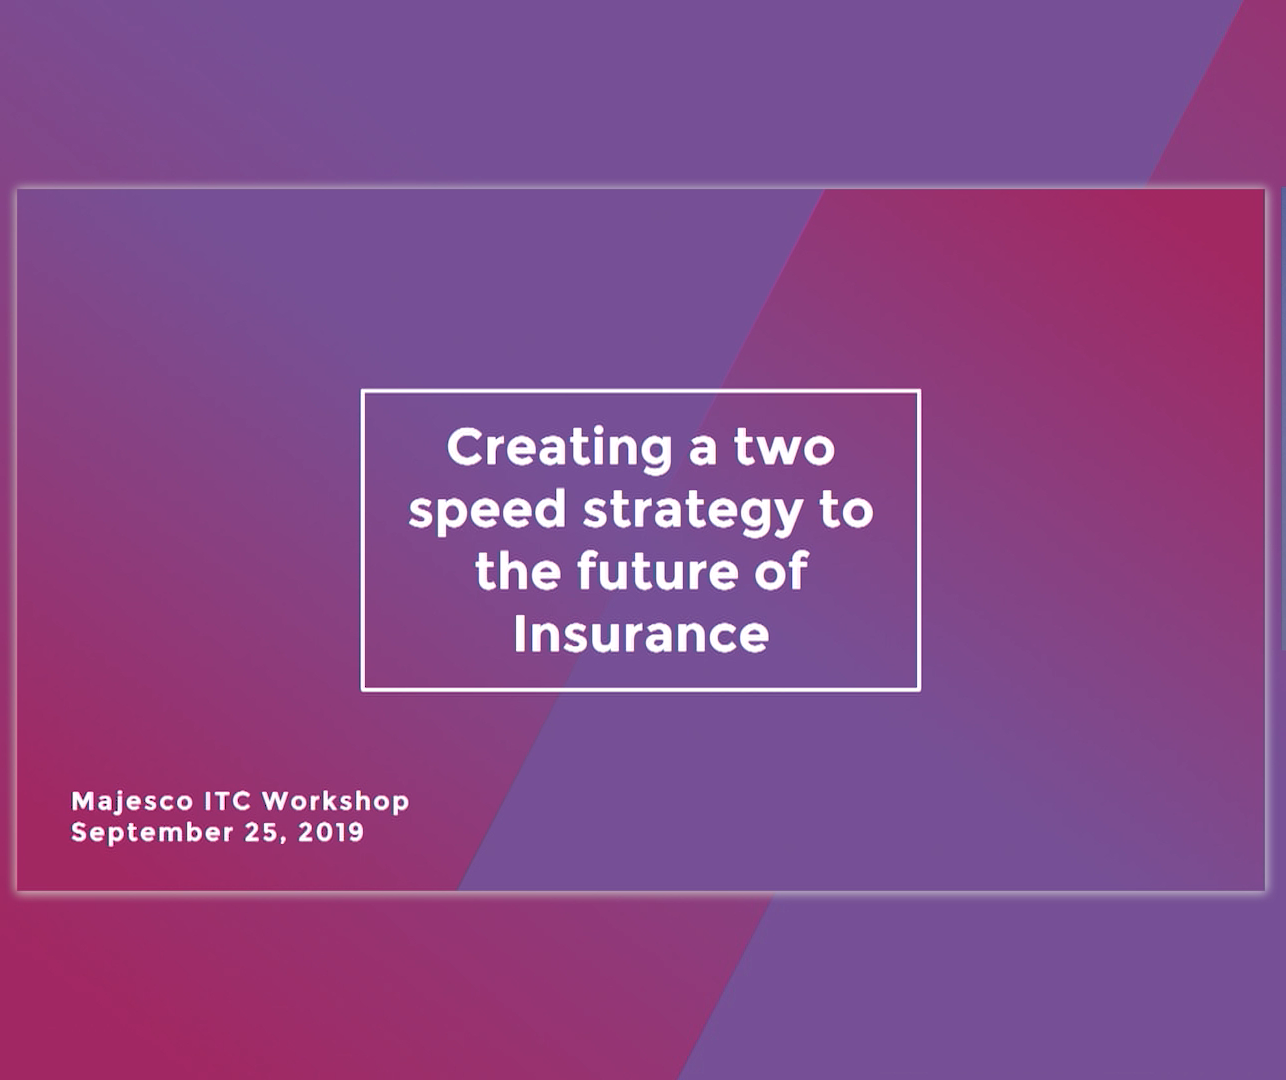 A View into the Future of Insurance: Customer Centricity, Innovation and Speed